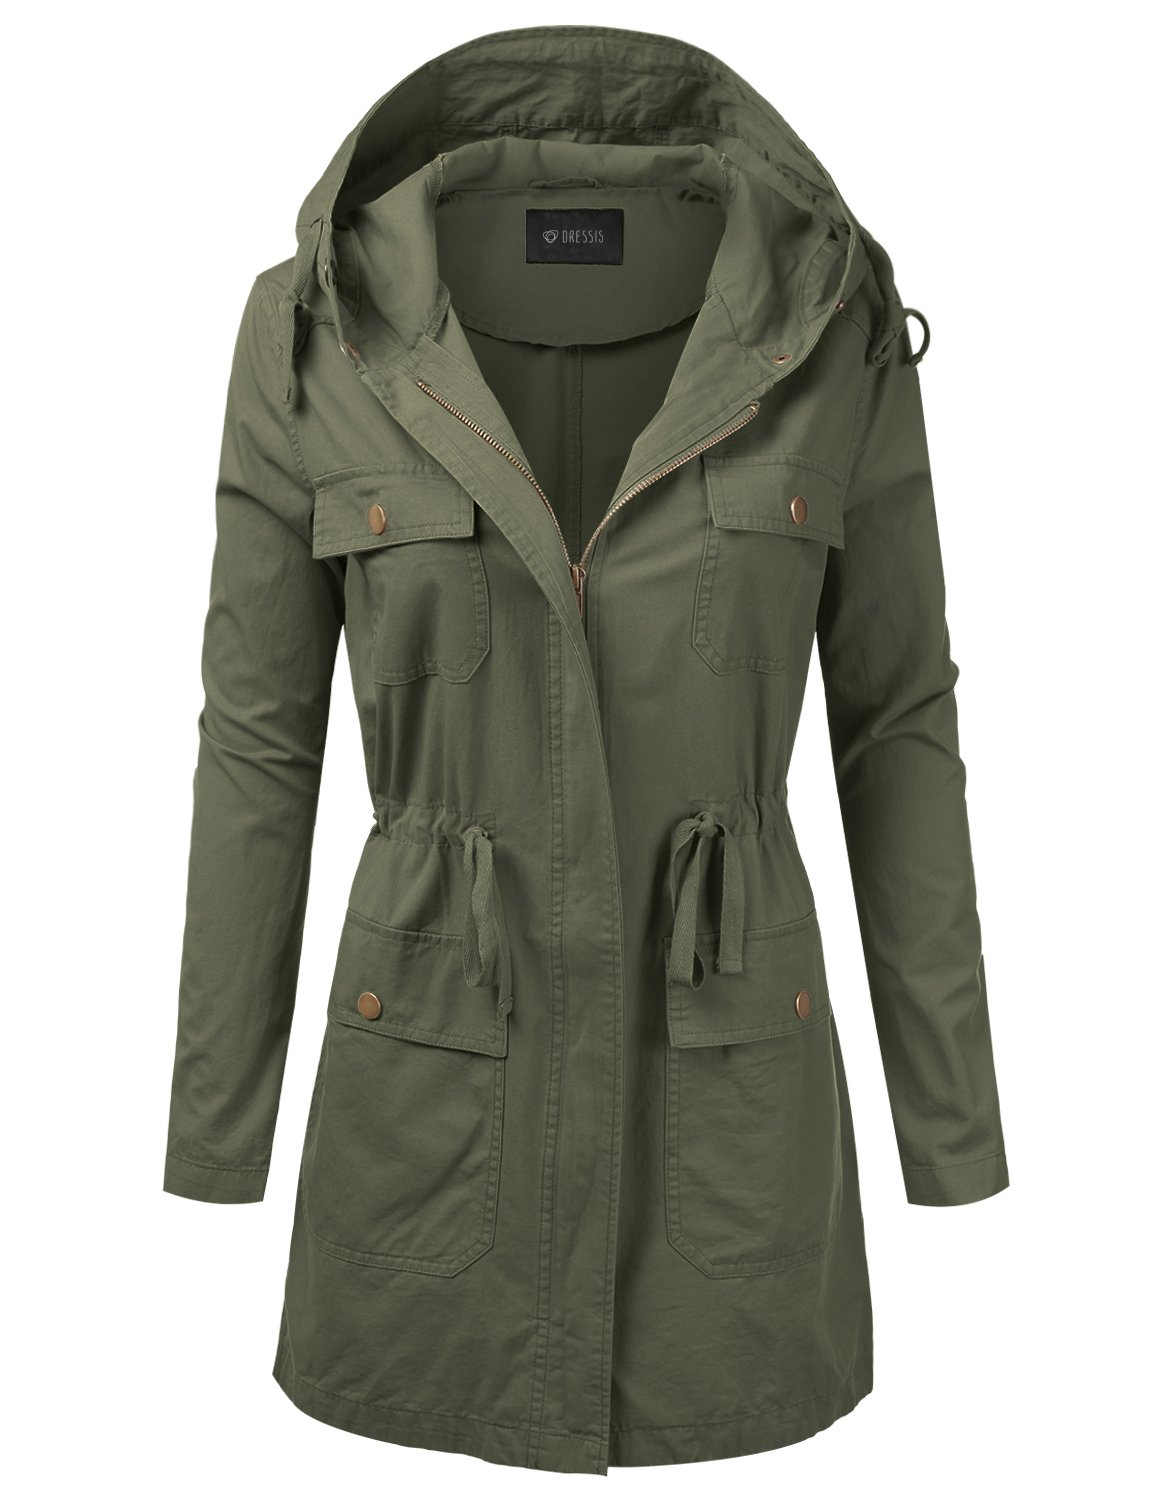 DRESSIS Women's Woven Hooded Cotton Utility Jacket with Drawstring Waist Olive 3XL